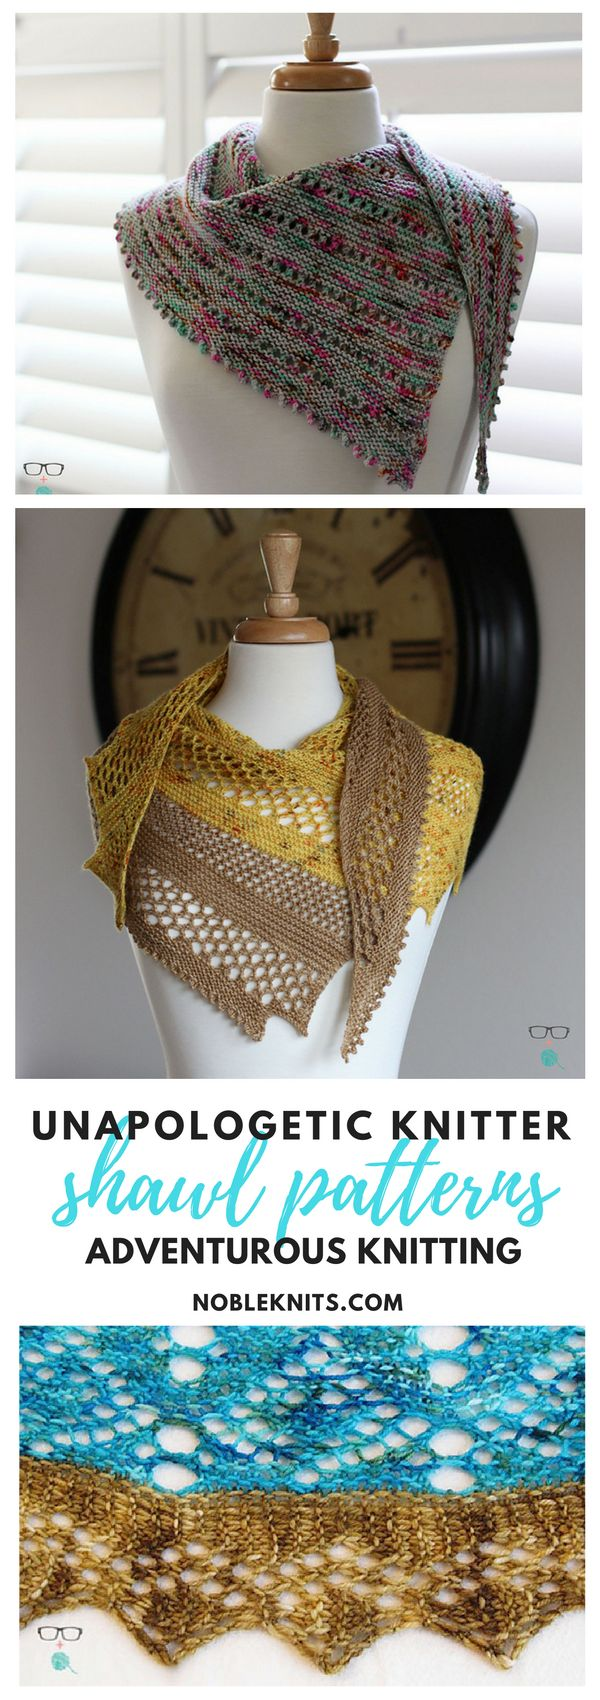 181 best shawl and wrap knitting patterns images on pinterest adventurous shawl knitting patterns from unapologetic knitter nobleknits bankloansurffo Image collections